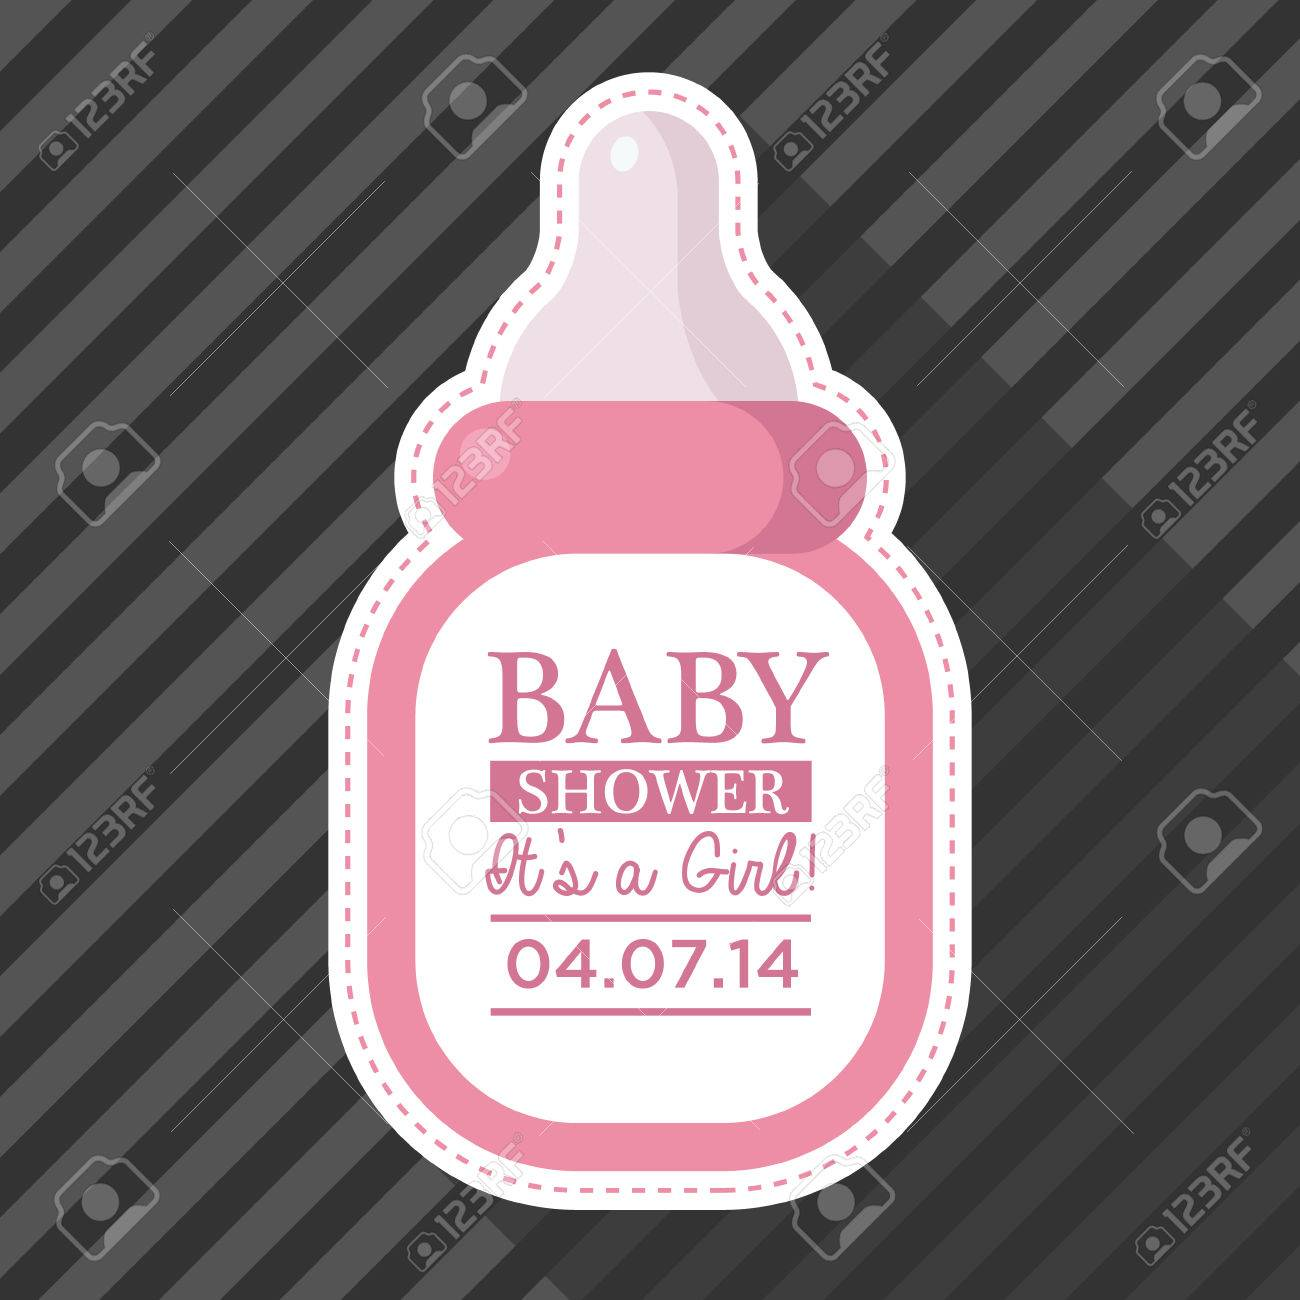 Baby shower invitation with baby bottle royalty free cliparts baby shower invitation with baby bottle stock vector 28515632 filmwisefo